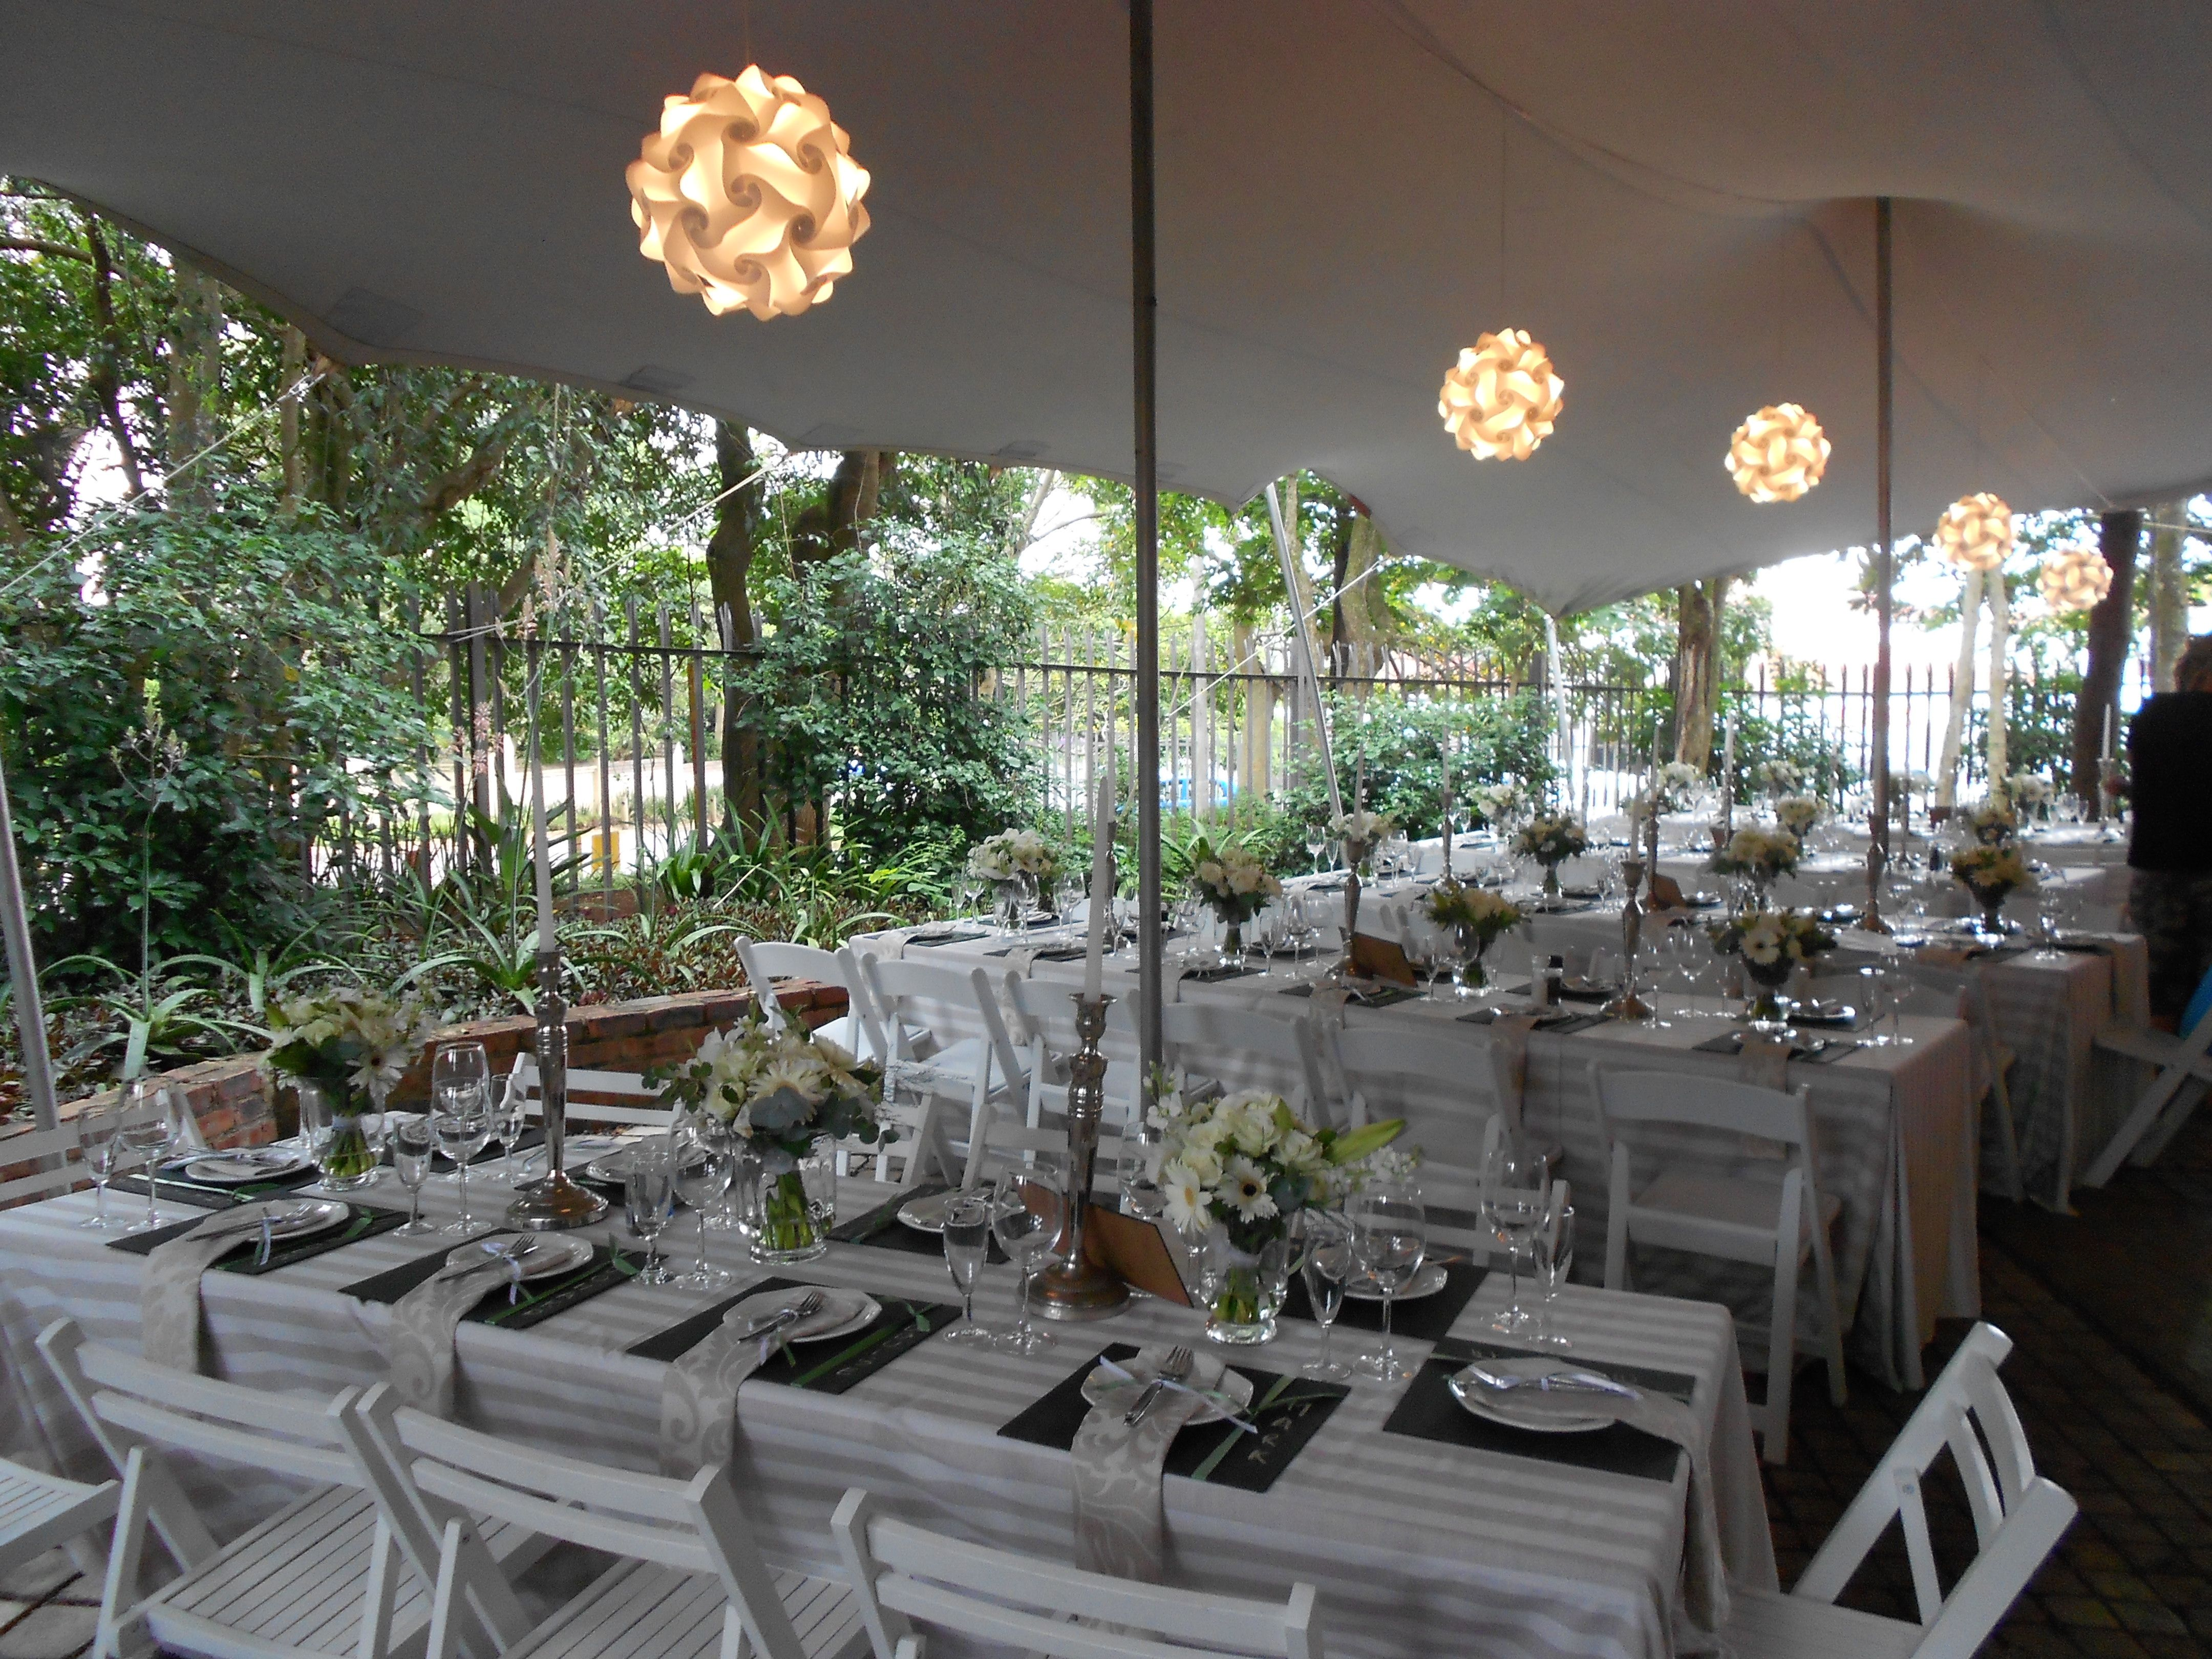 Table settings outdoor wedding ideas pinterest for Pinterest outdoor wedding ideas